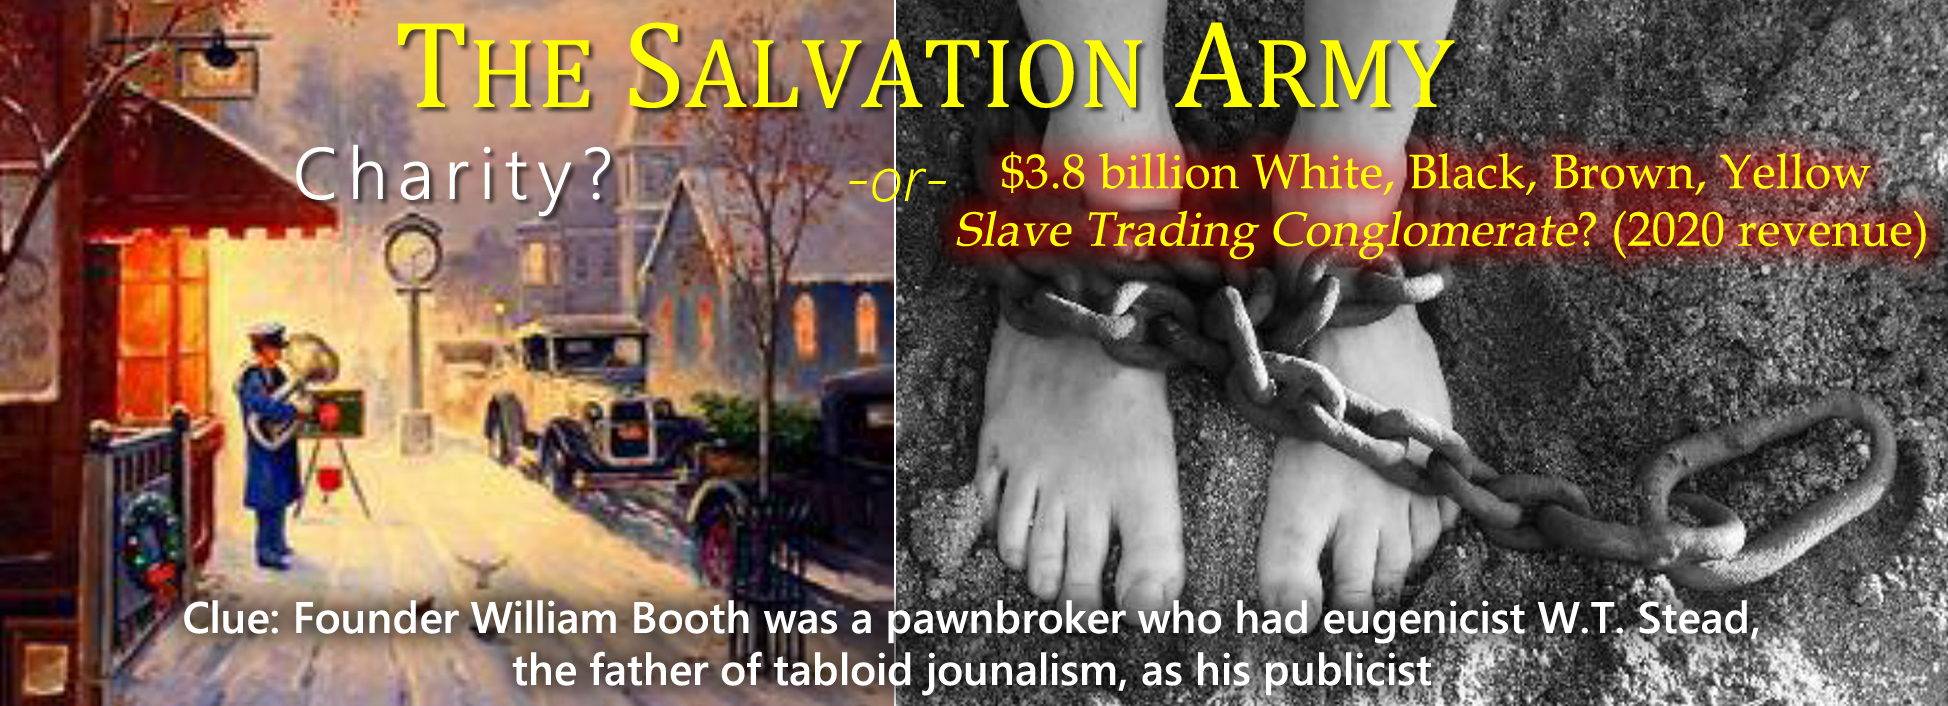 The Salvation Army: Charity? or $3.8 billion White, Black, Brown, Yellow Slave Trading Conglomerate? (2020 revenue)? Clue: Founder William Booth was a pawnbroker who had eugenicist W.T. Stead, the father of tabloid journalism, as his publicist